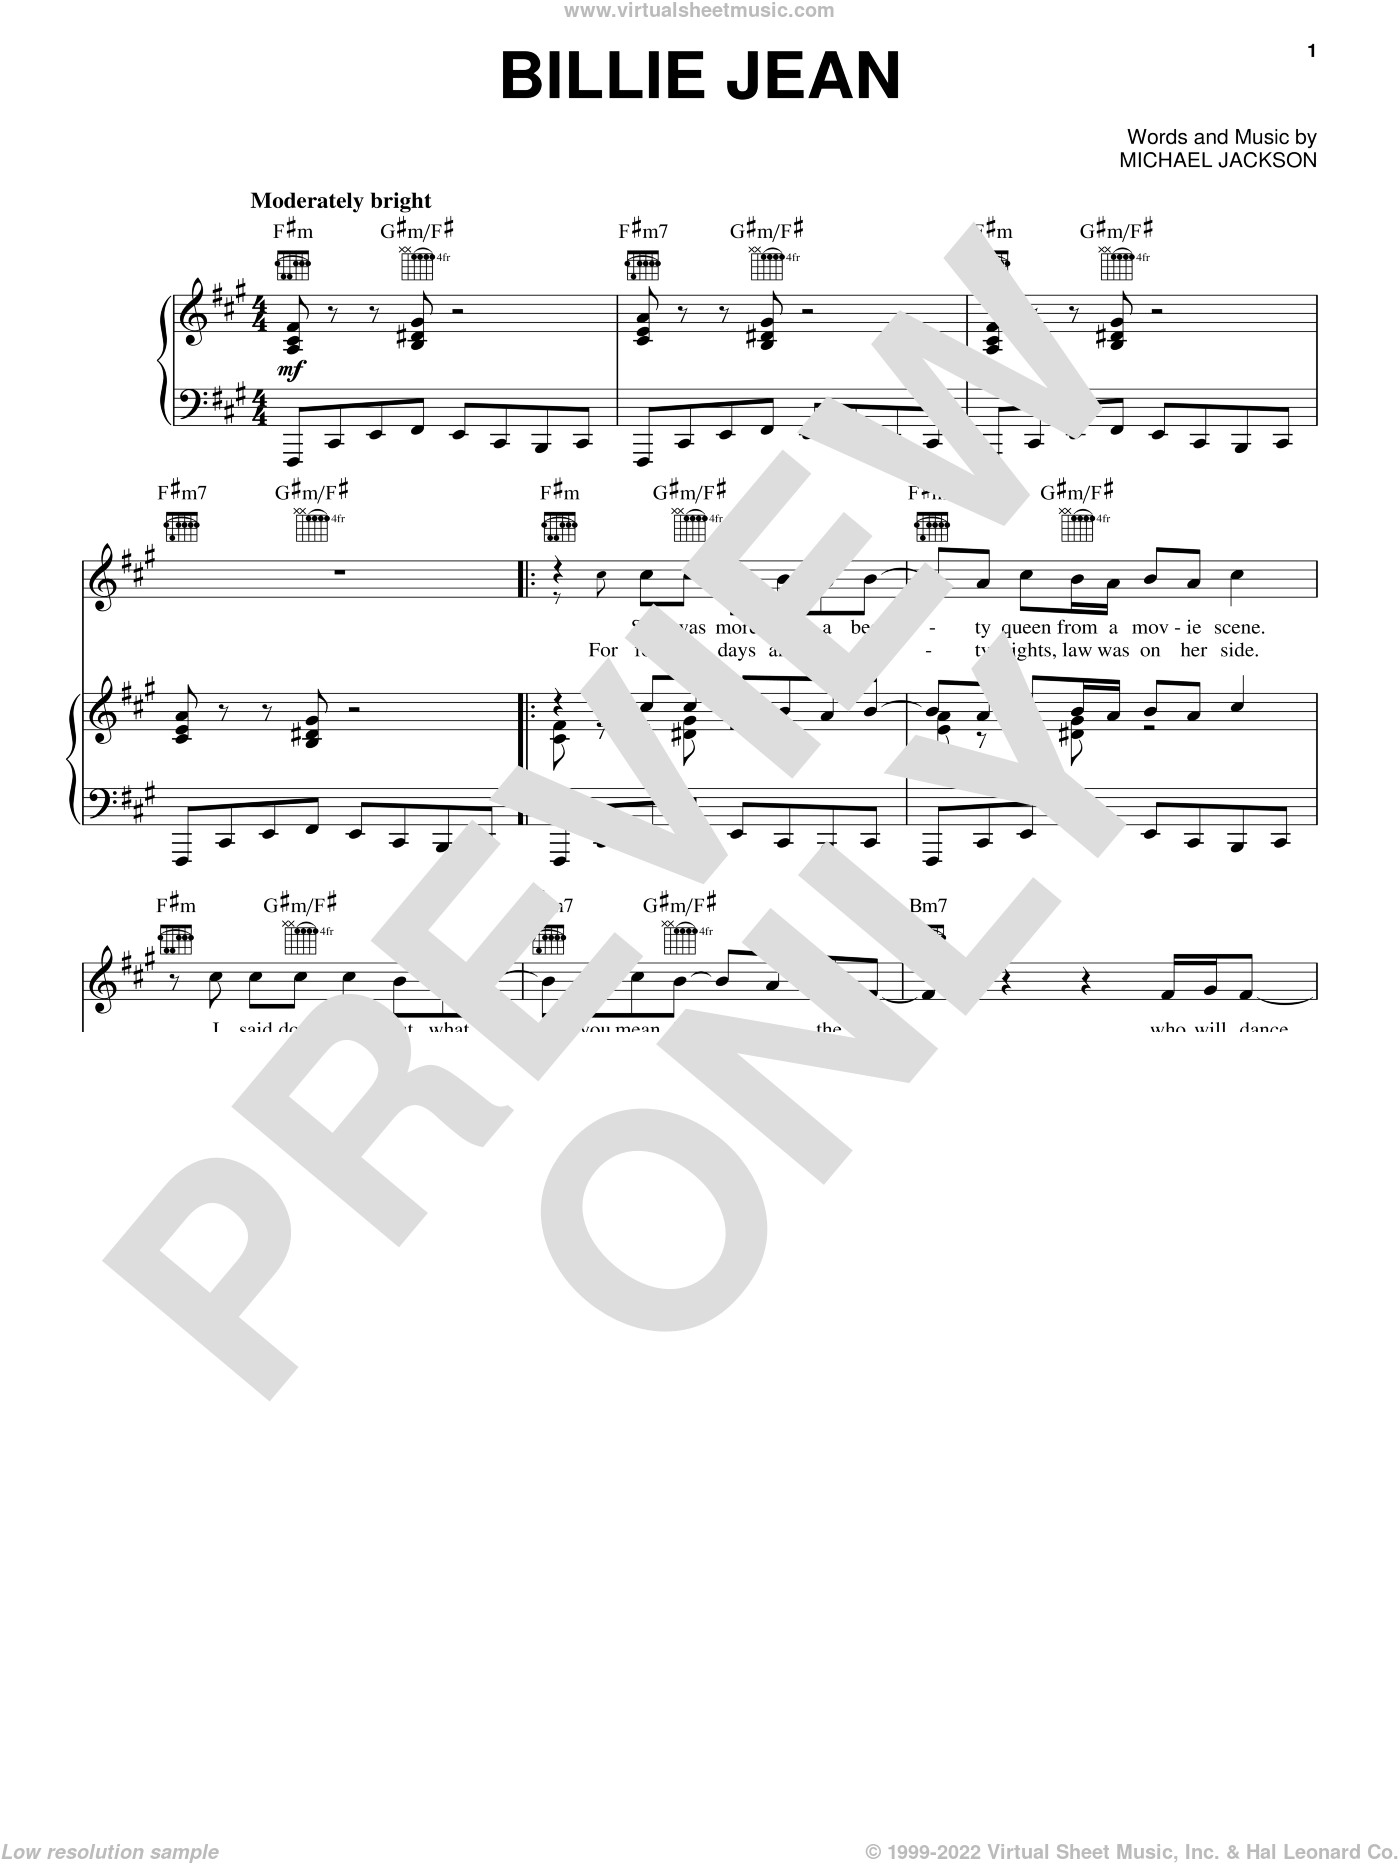 Billie Jean sheet music for voice, piano or guitar by Michael Jackson, intermediate skill level